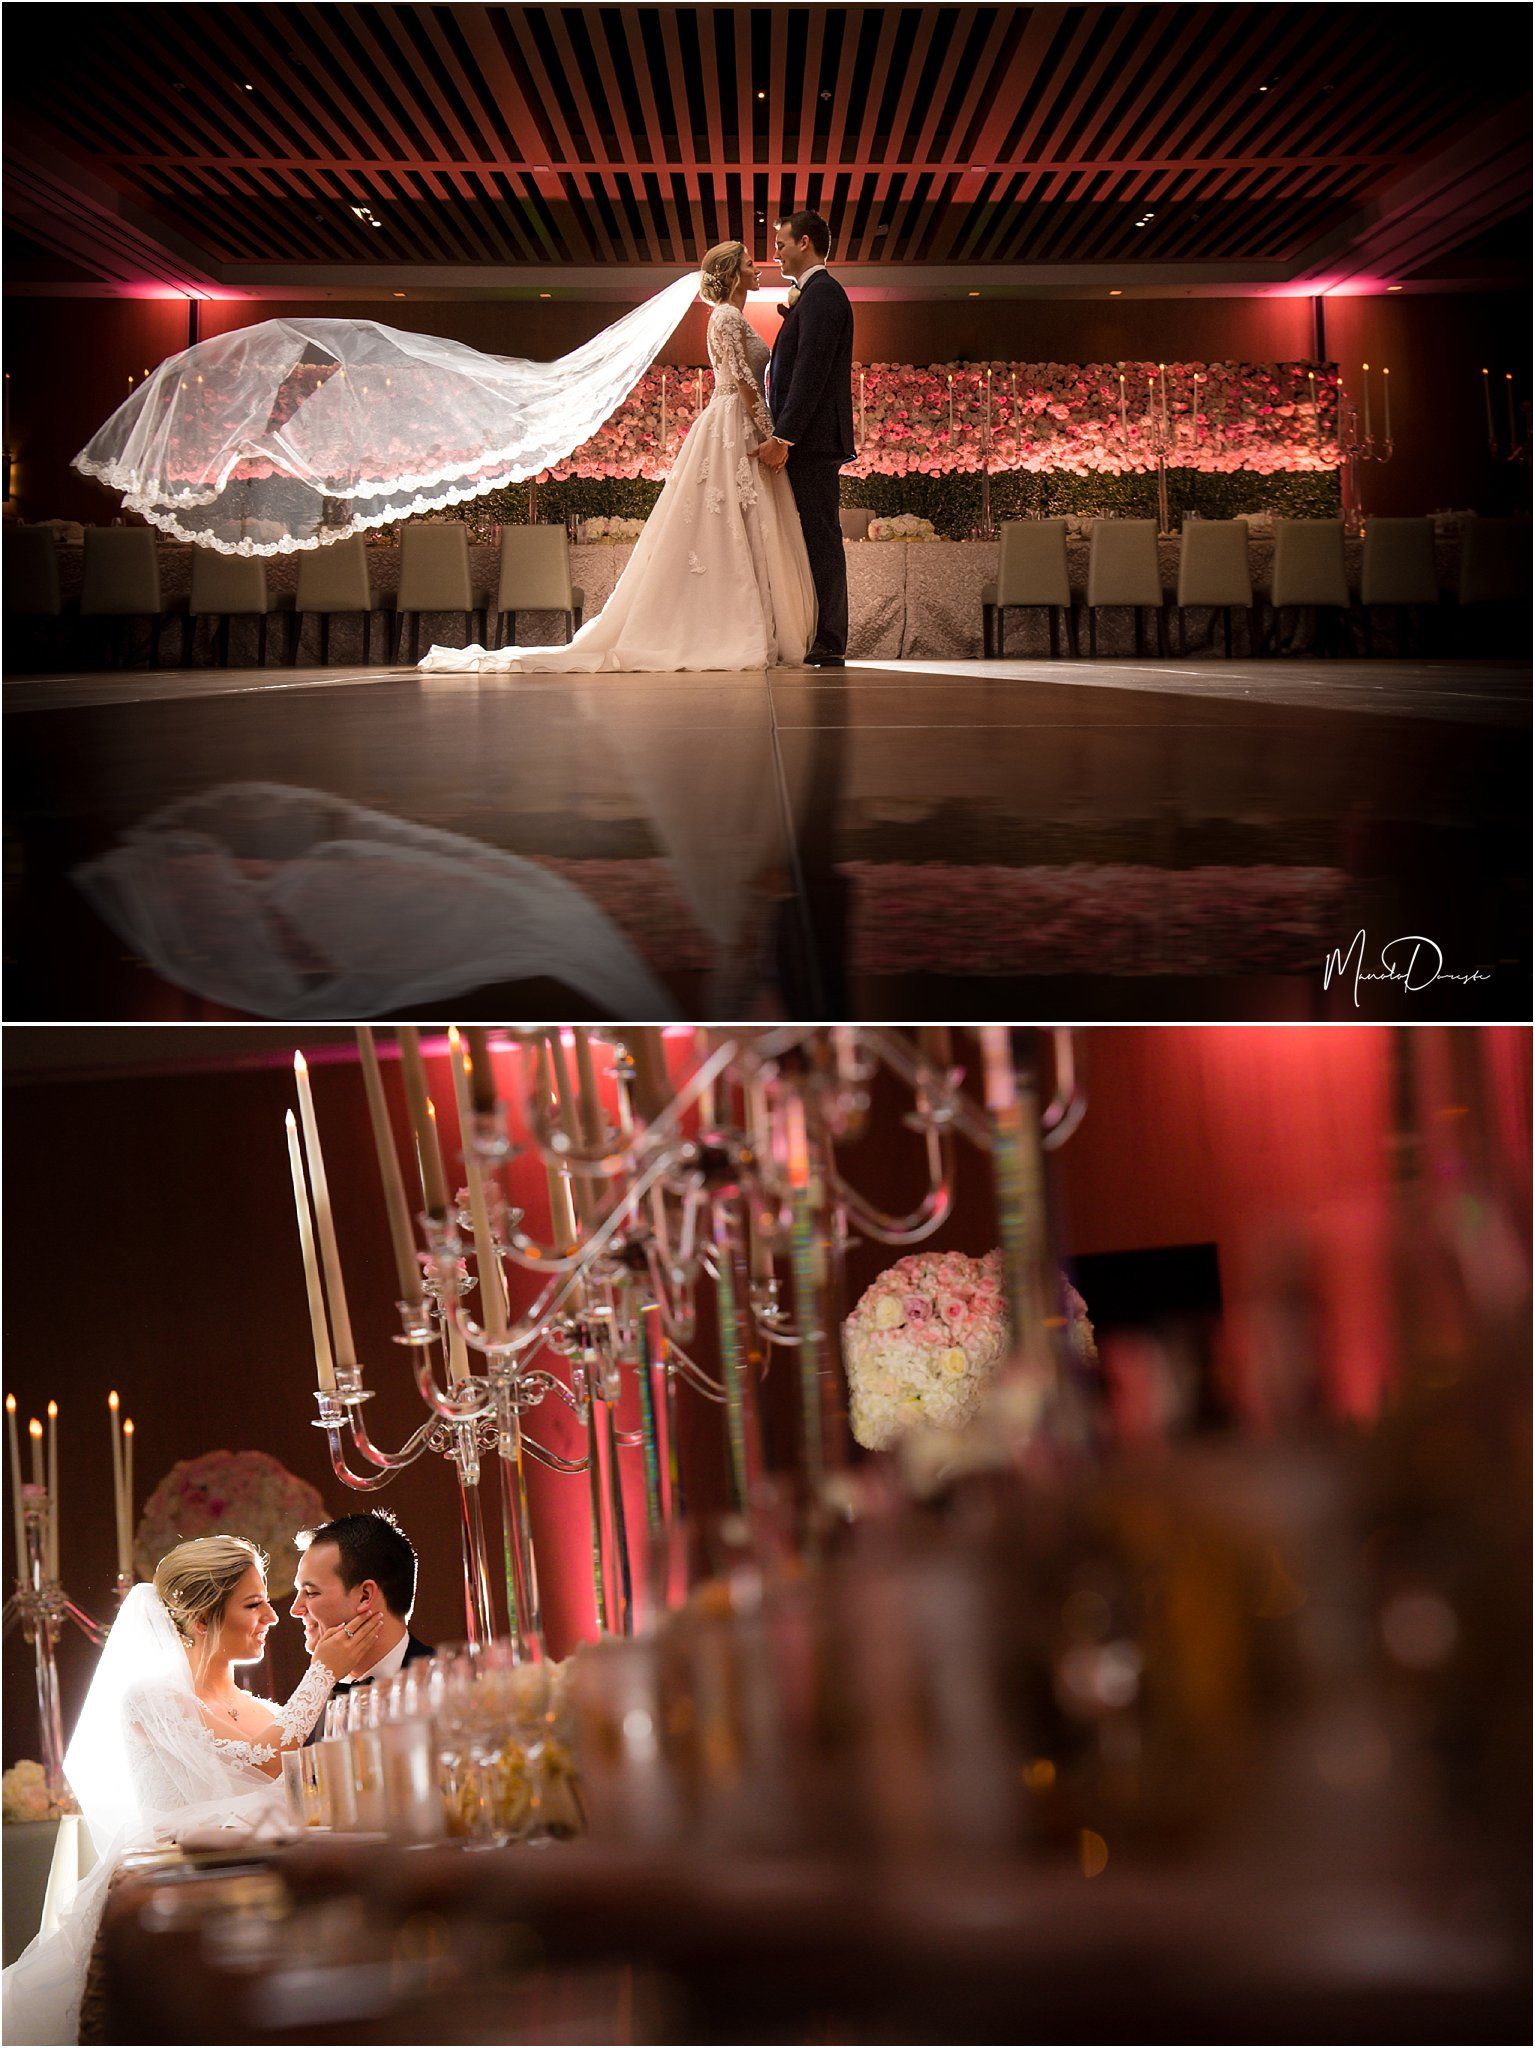 0270_ManoloDoreste_InFocusStudios_Wedding_Family_Photography_Miami_MiamiPhotographer.jpg